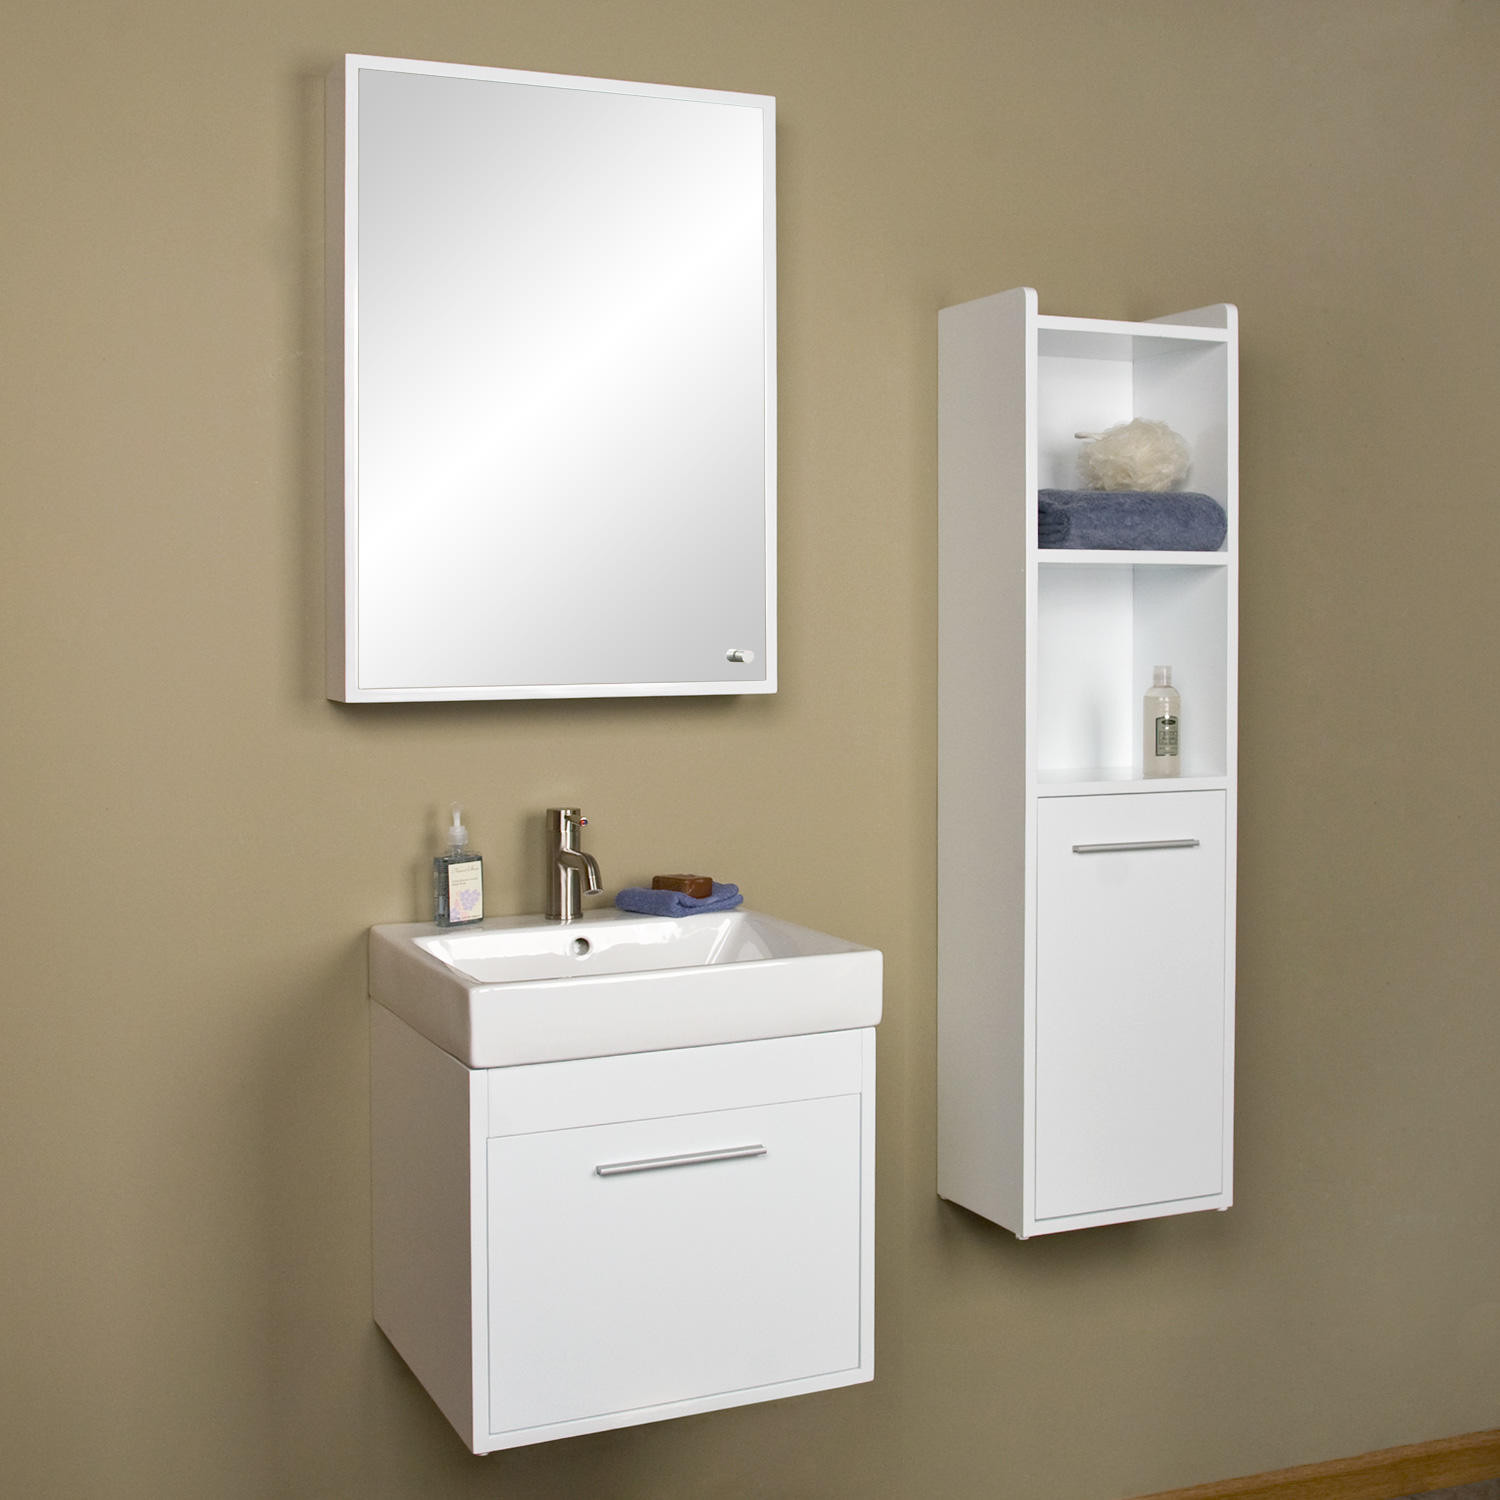 """Best ideas about Wall Mounted Bathroom Cabinets . Save or Pin 26"""" Sumiko Wall Mount Vanity with Medicine Cabinet Bathroom Now."""